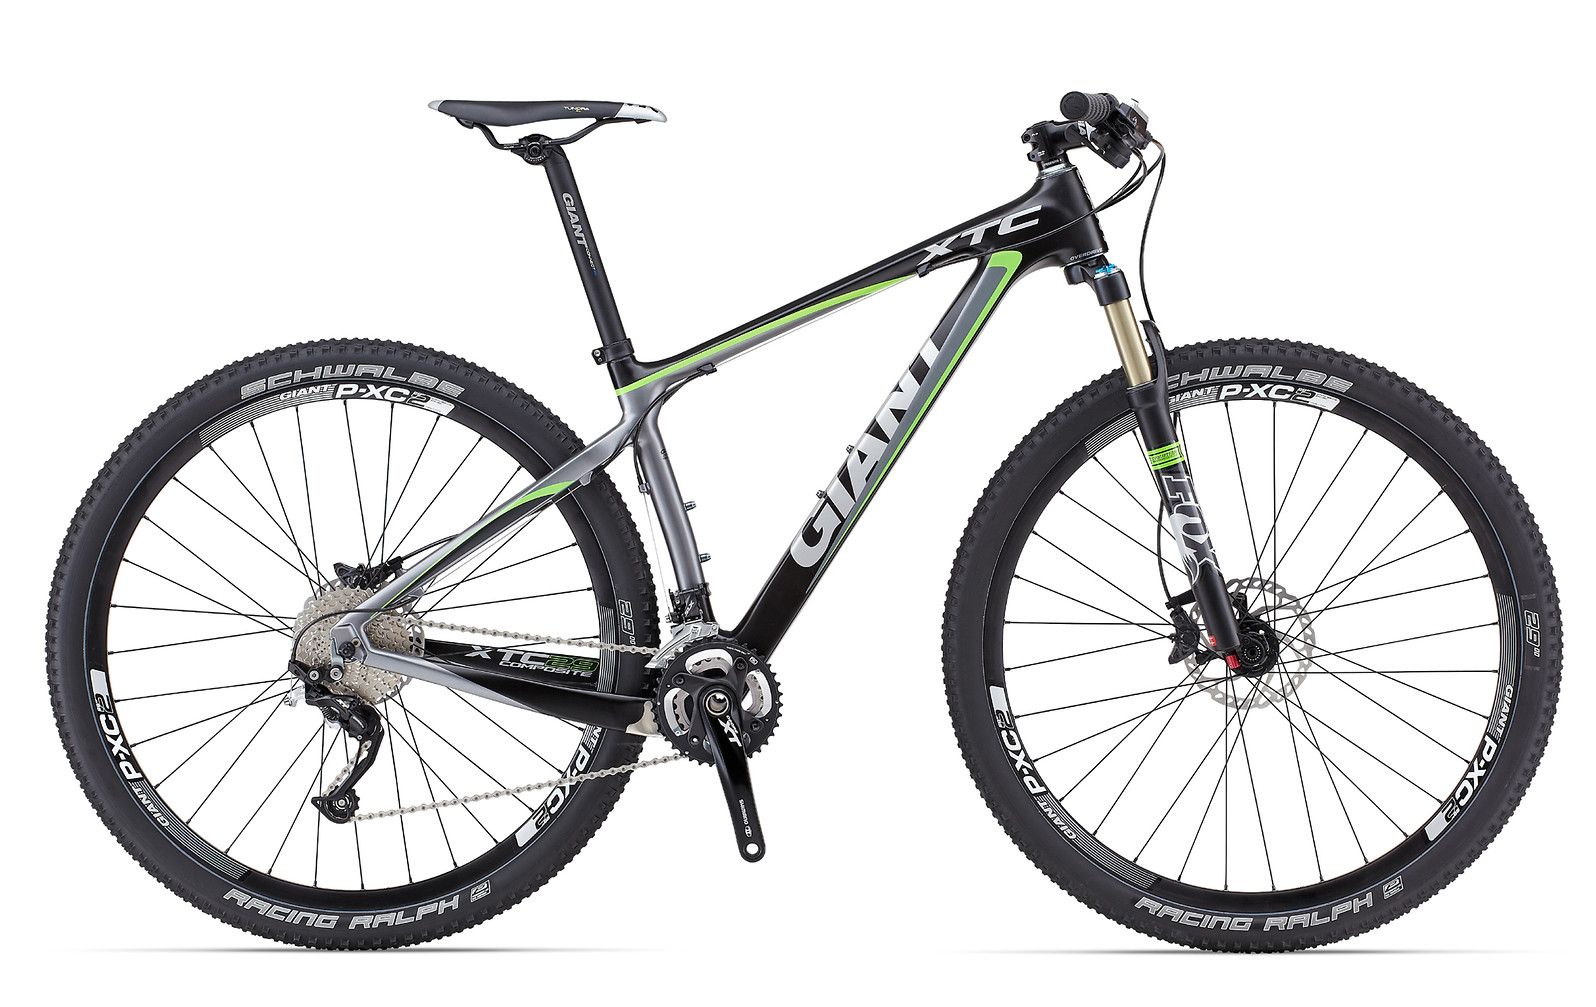 2013 Giant XTC Composite 29er 1 Bike XtC_Composite_29er_1